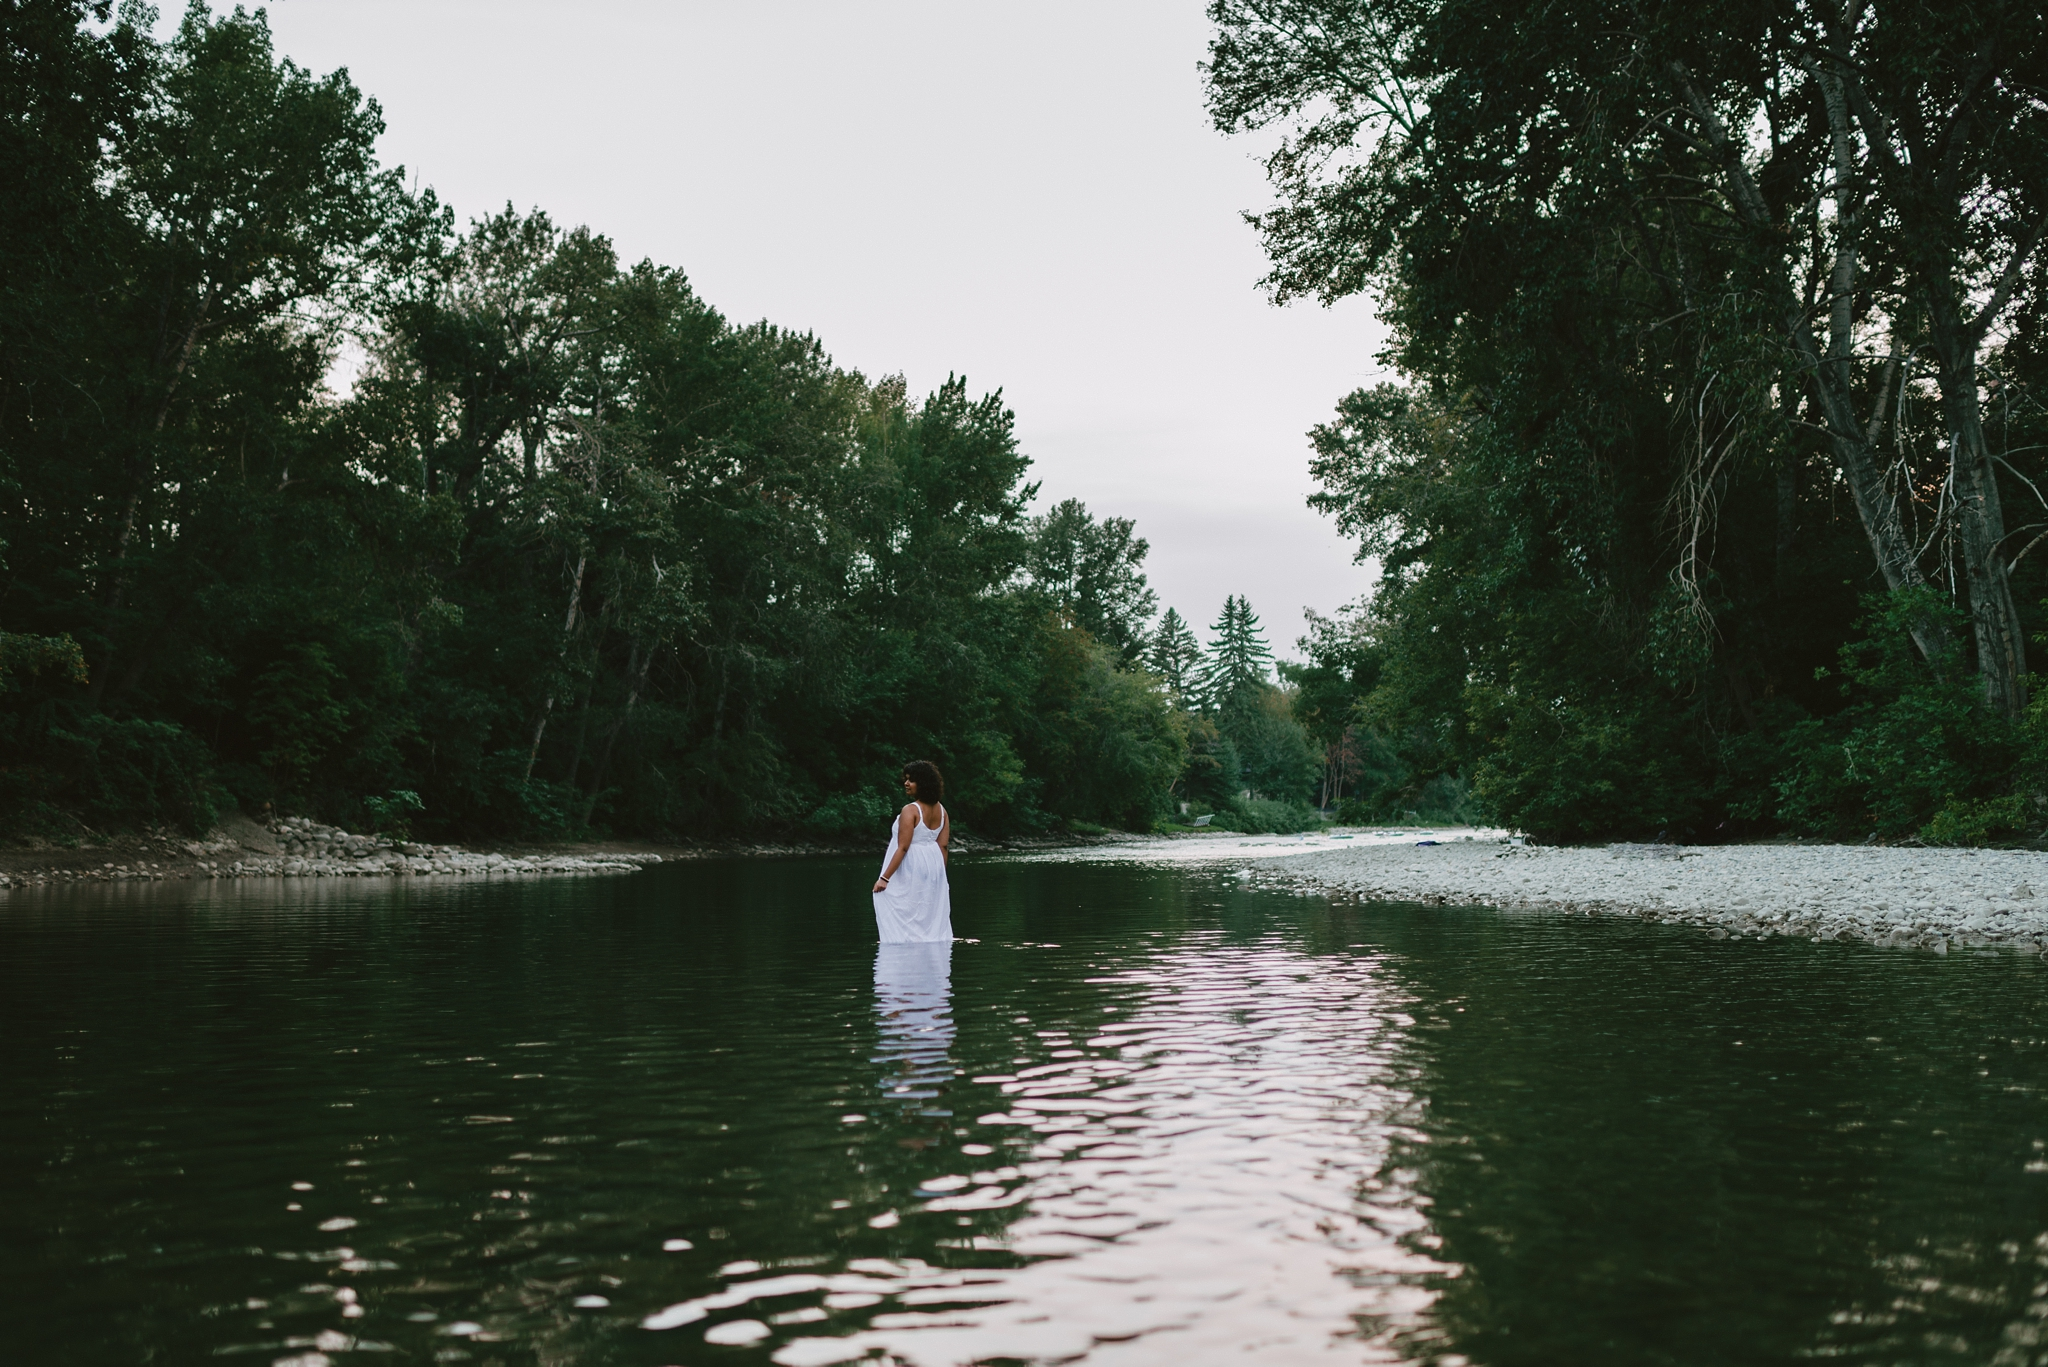 kaihla_tonai_intimate_wedding_elopement_photographer_0062